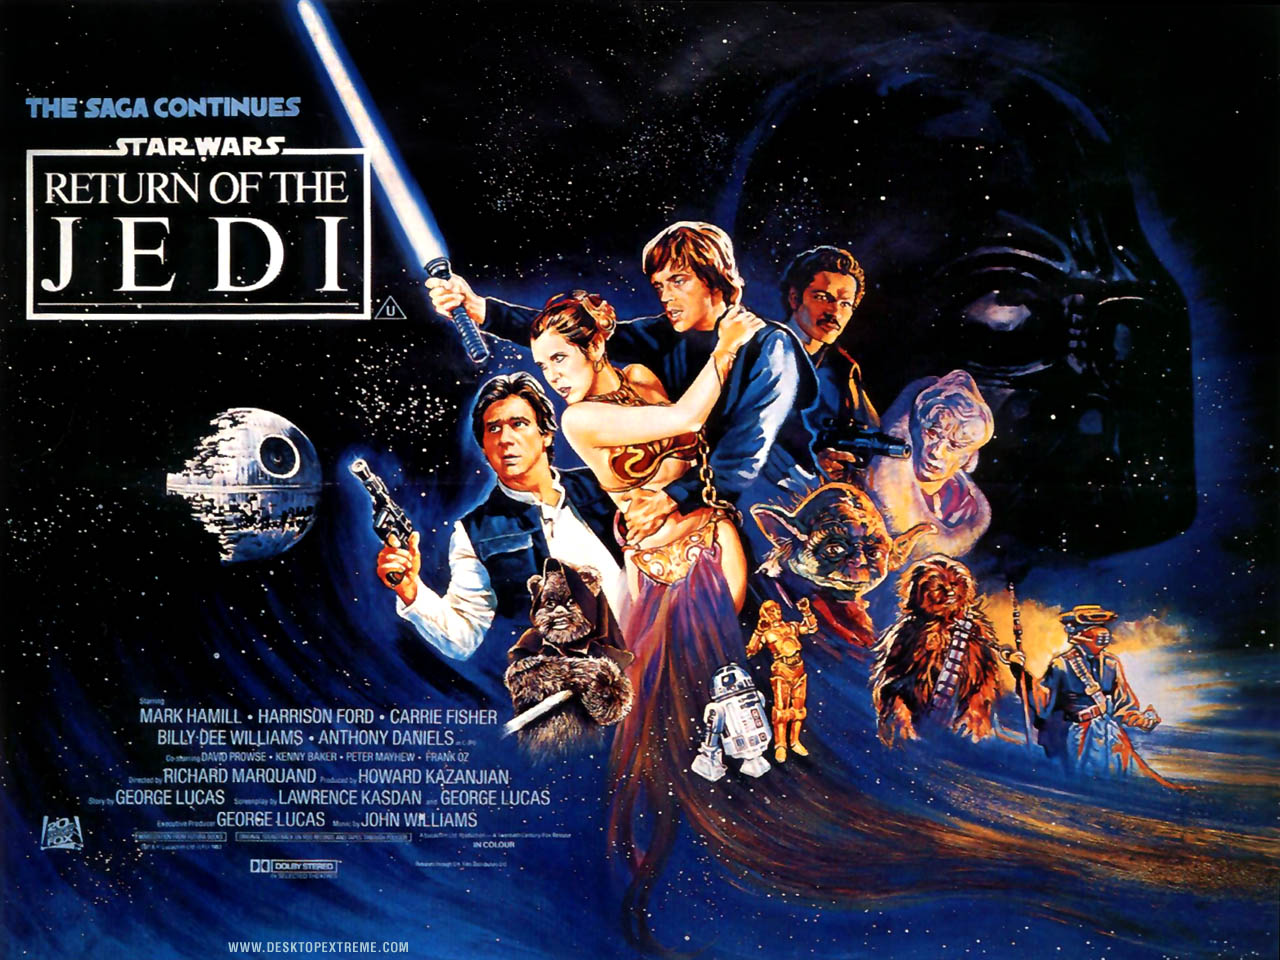 http://4.bp.blogspot.com/-PAFO1TydL4k/TjHDCDgL0SI/AAAAAAAAAJk/HCcb91lCr3U/s1600/Star_Wars_-_Return_of_the_Jedi_913200514333PM285.jpg